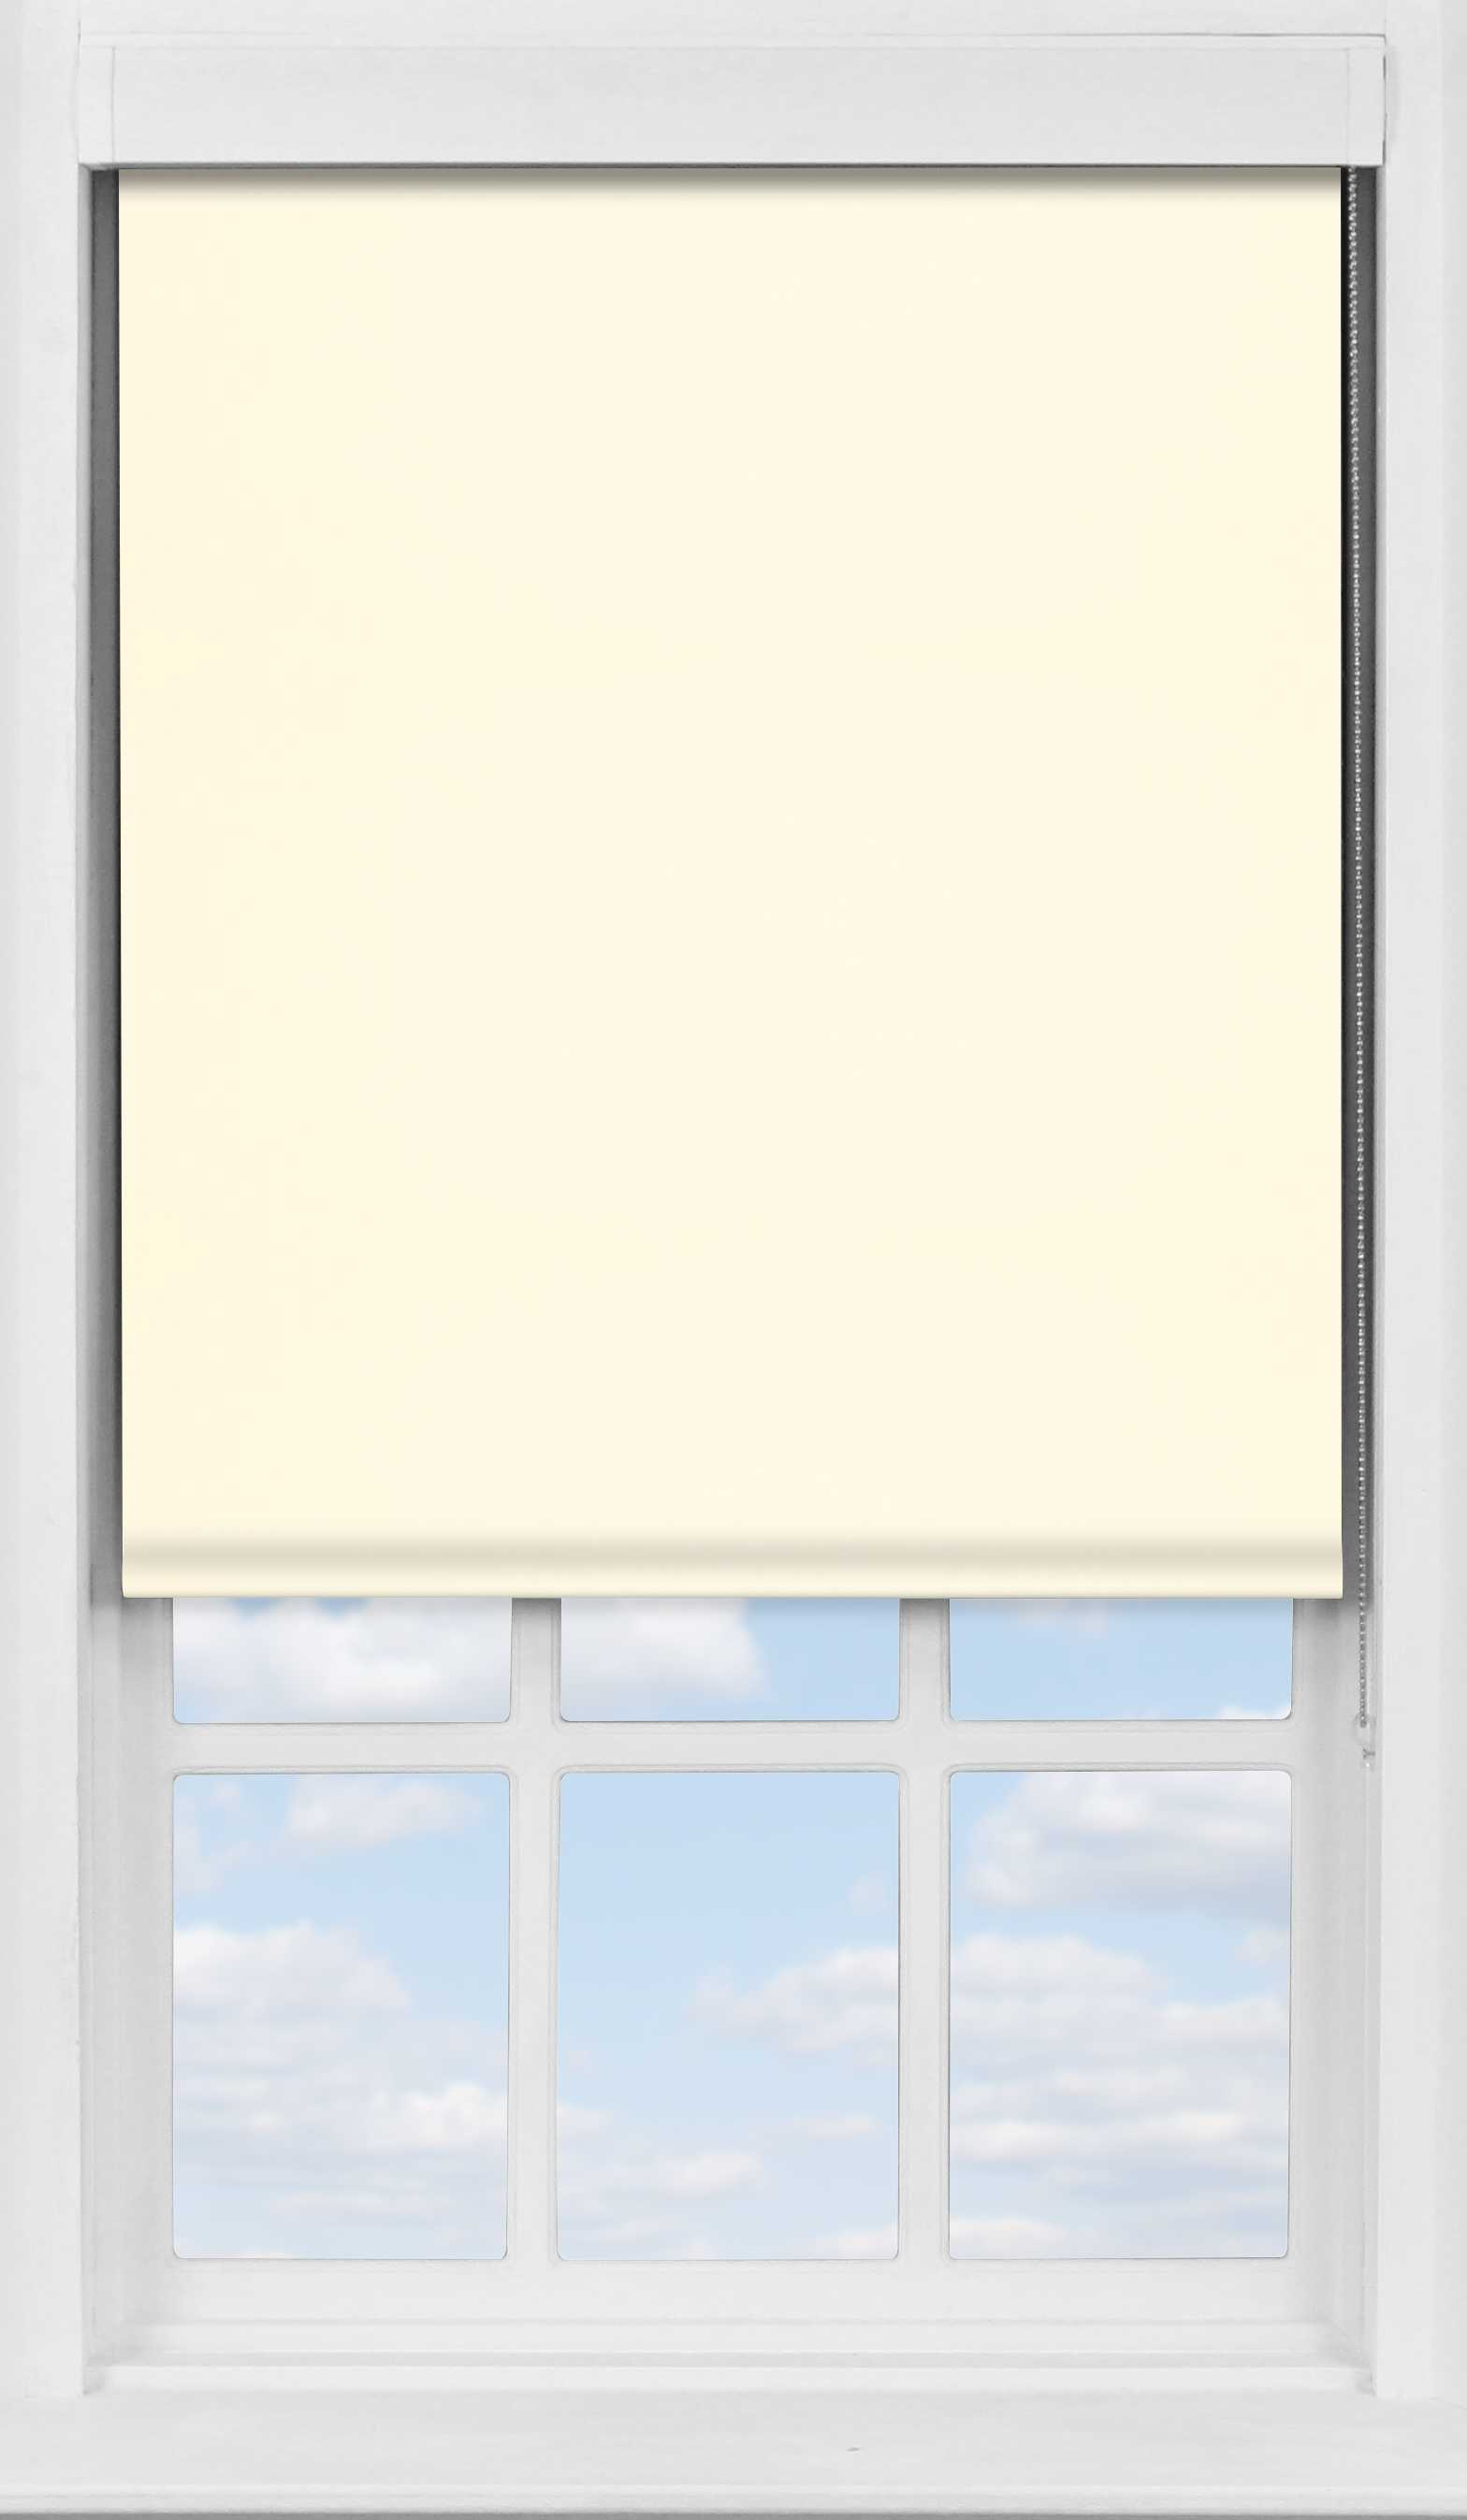 Premium Roller Blind in Delicate Cream Translucent